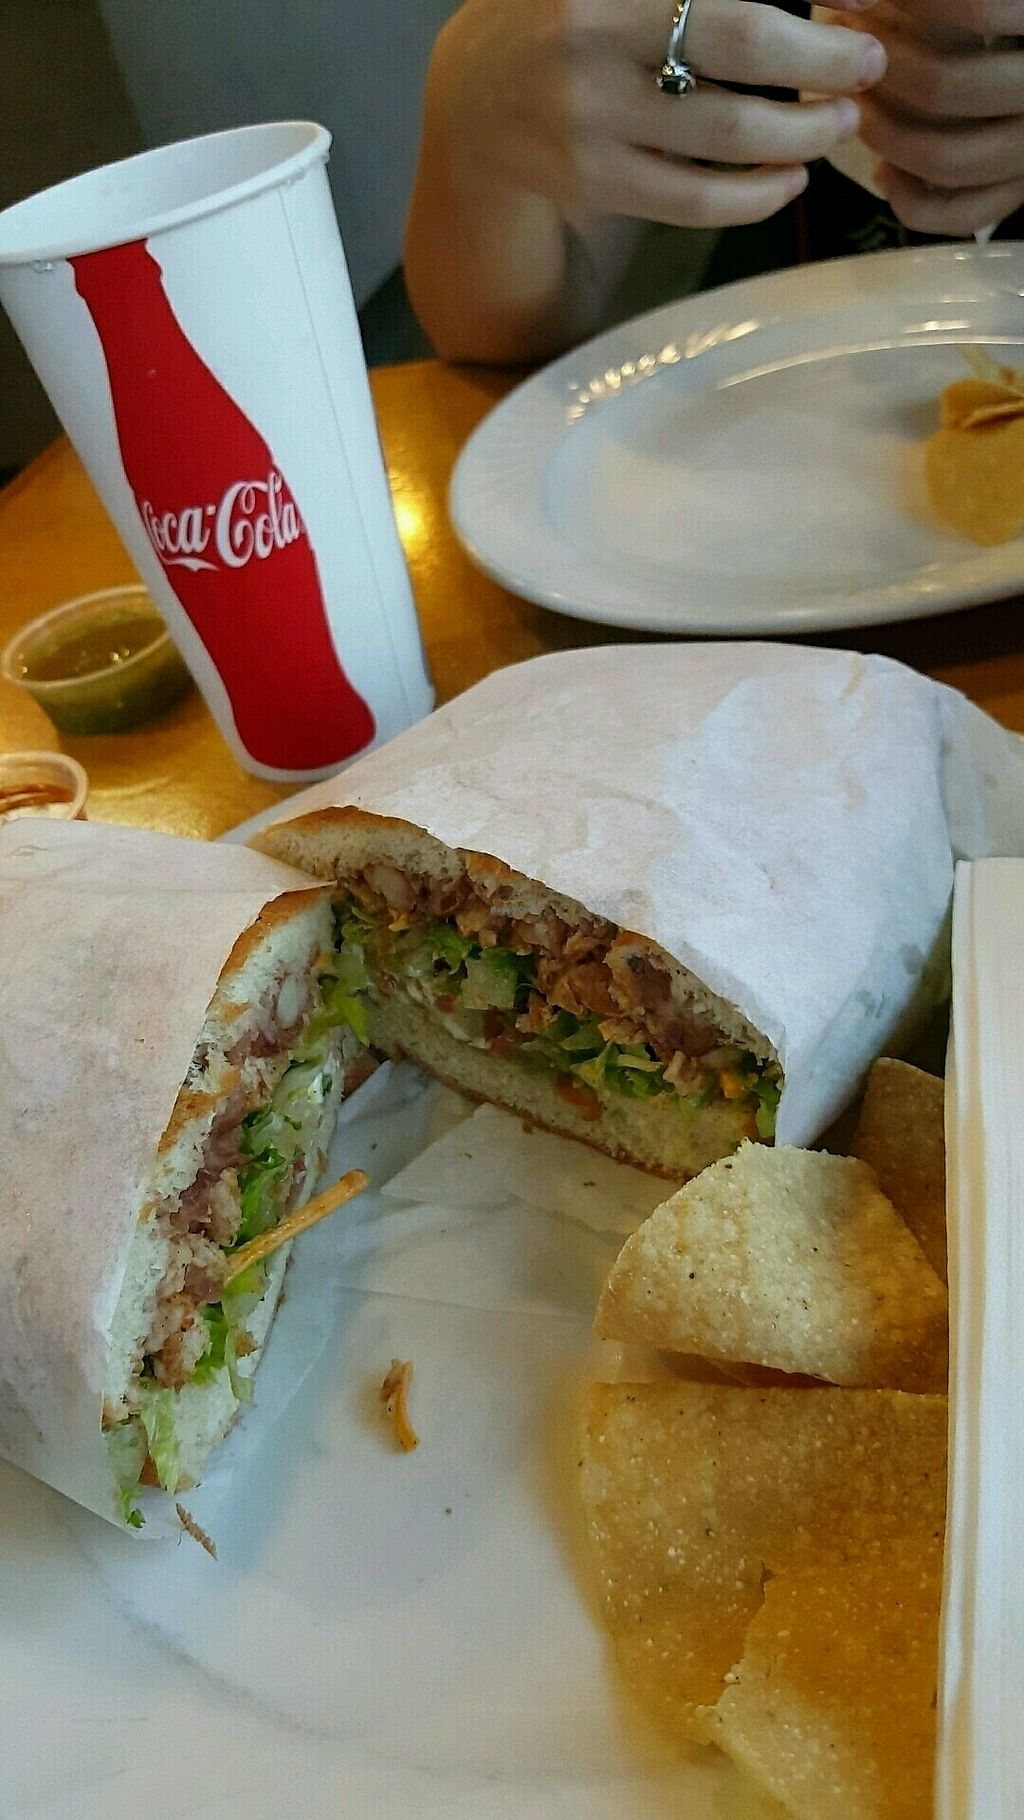 "Photo of Tacos Cancun  by <a href=""/members/profile/tussinwolf"">tussinwolf</a> <br/>Tortas are amazing  <br/> September 23, 2017  - <a href='/contact/abuse/image/34606/307504'>Report</a>"